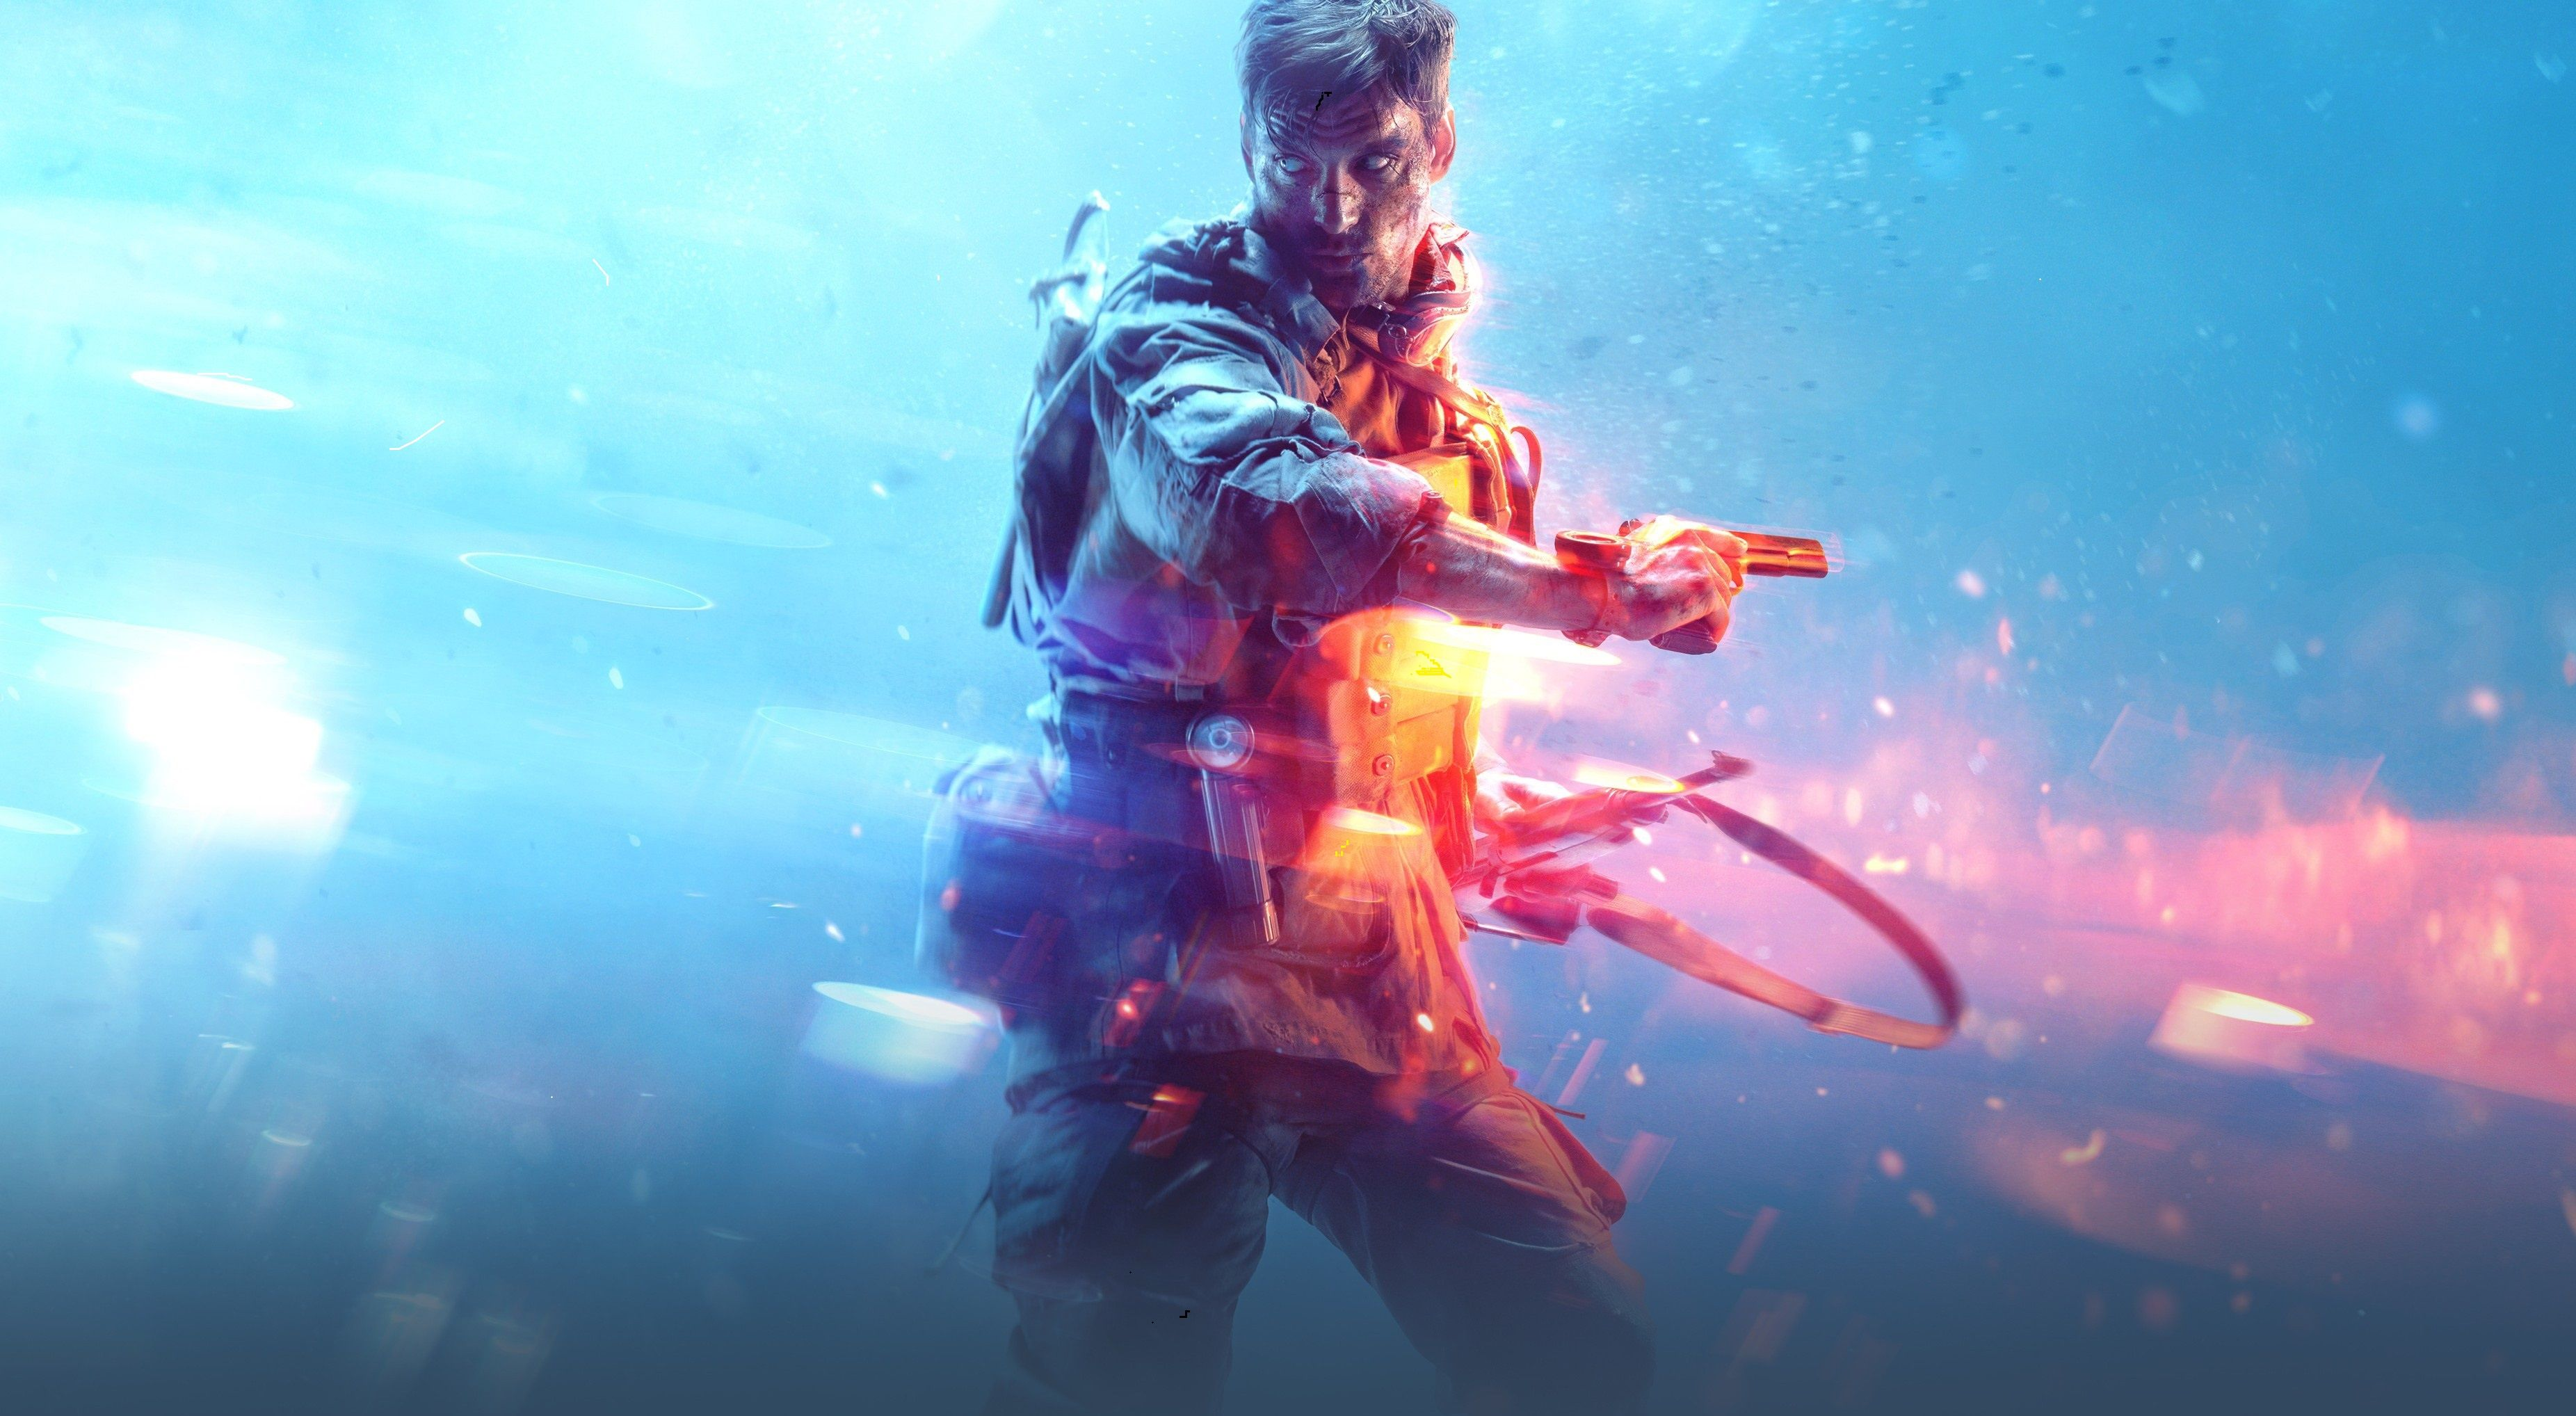 Battlefield 5 Game Wallpaper 4k Download Full Hd Wallpapers Games Pc Desktop Mobile Iphone 4k Gaming Wallpaper Hd Cool Wallpapers Battlefield